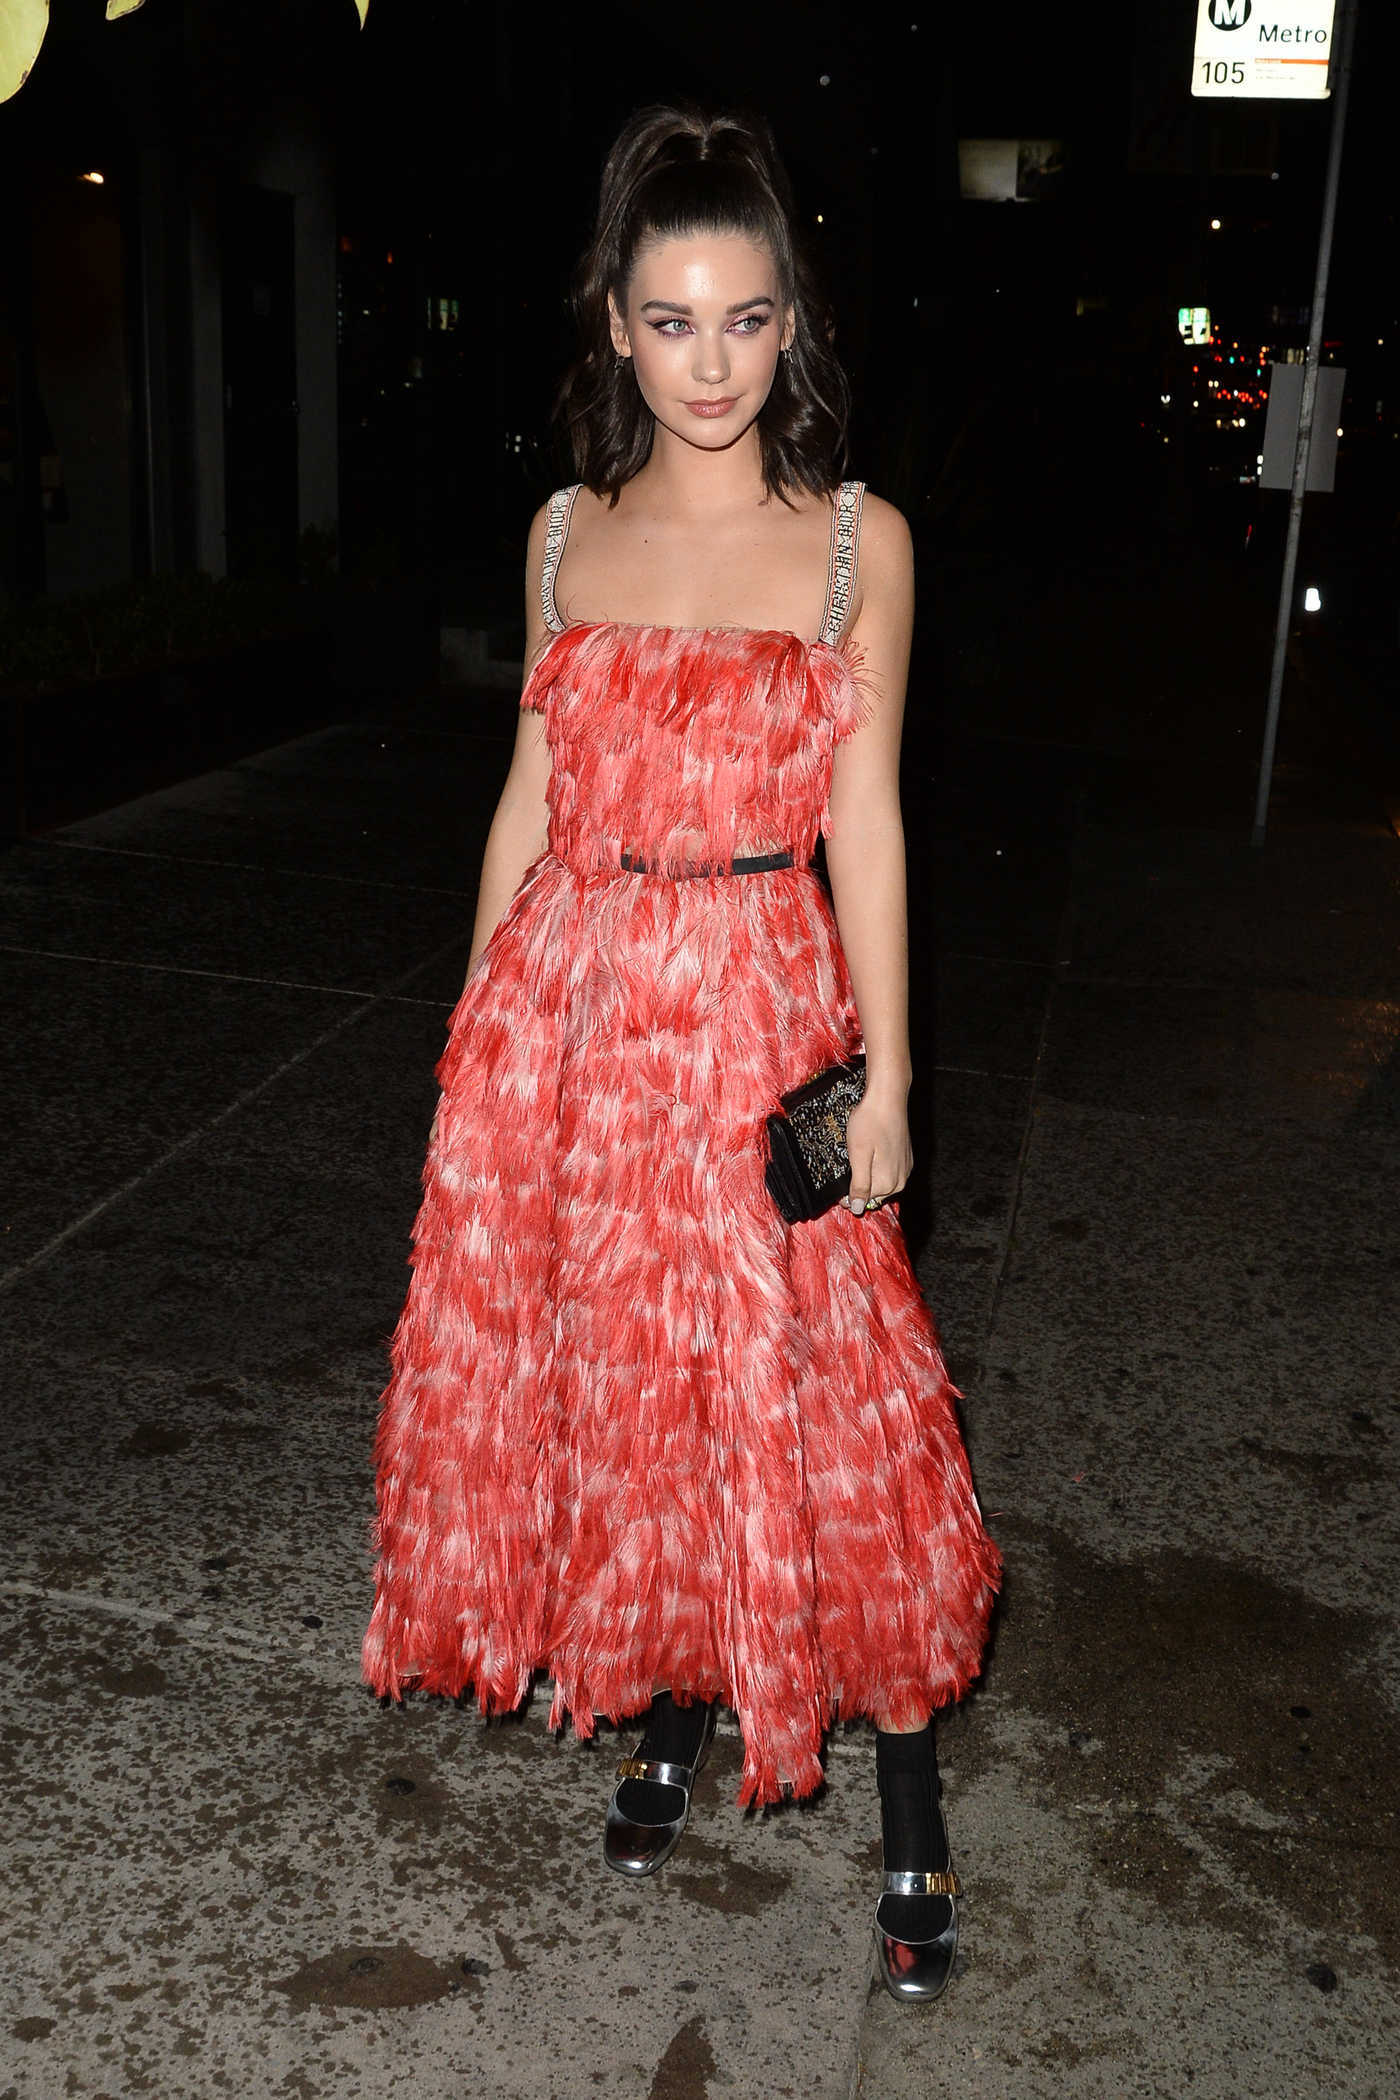 Amanda Steele Arrives at the Dior Addict Lacquer Pump Launch Party in West Hollywood 03/14/2018